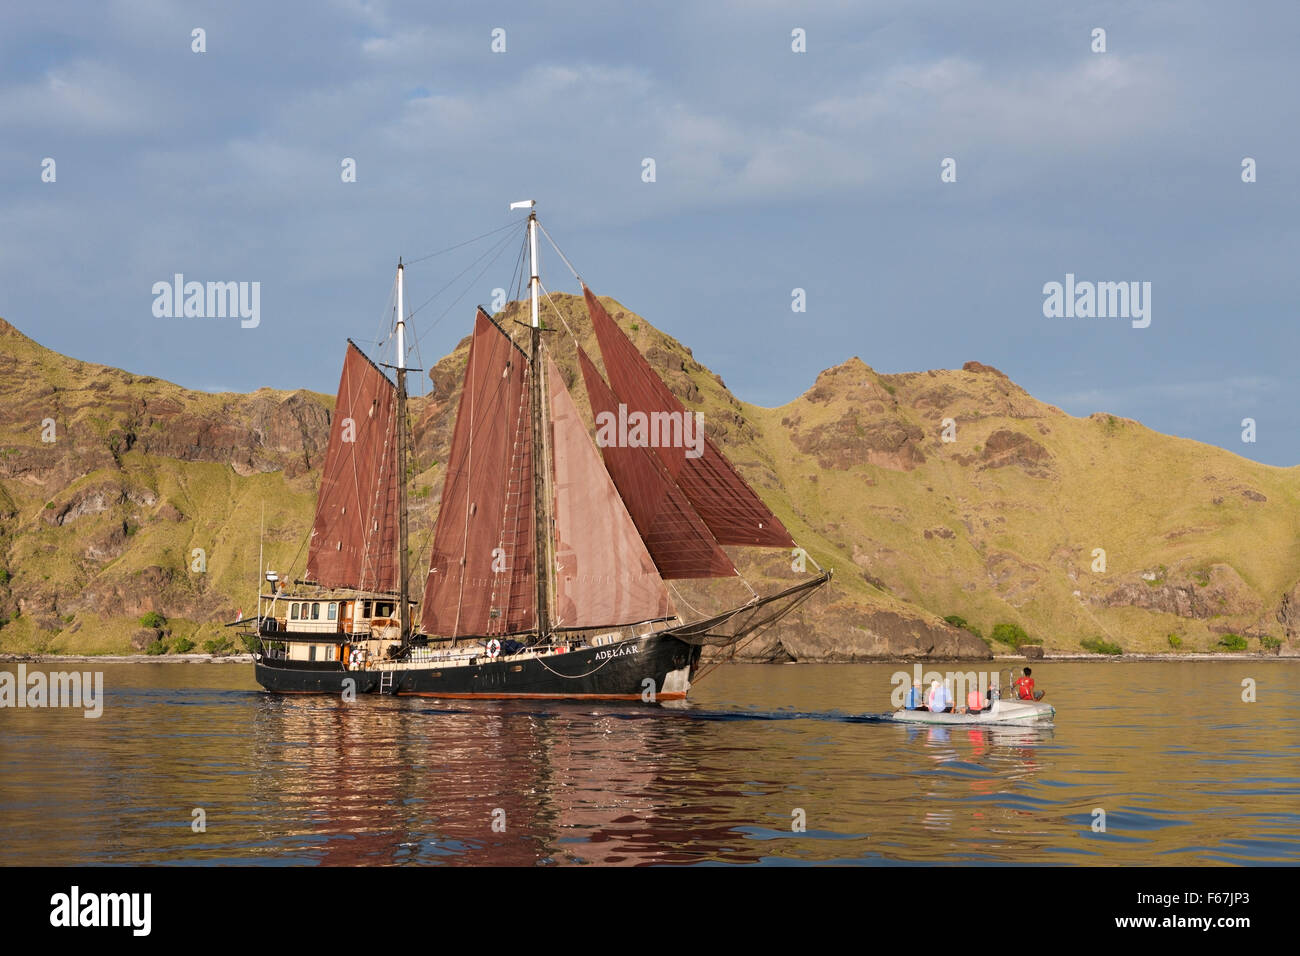 Sailing Ship Adelaar Stock Photos Komodo Scuba Diving Liveaboard Ss Near National Park Indonesia Image